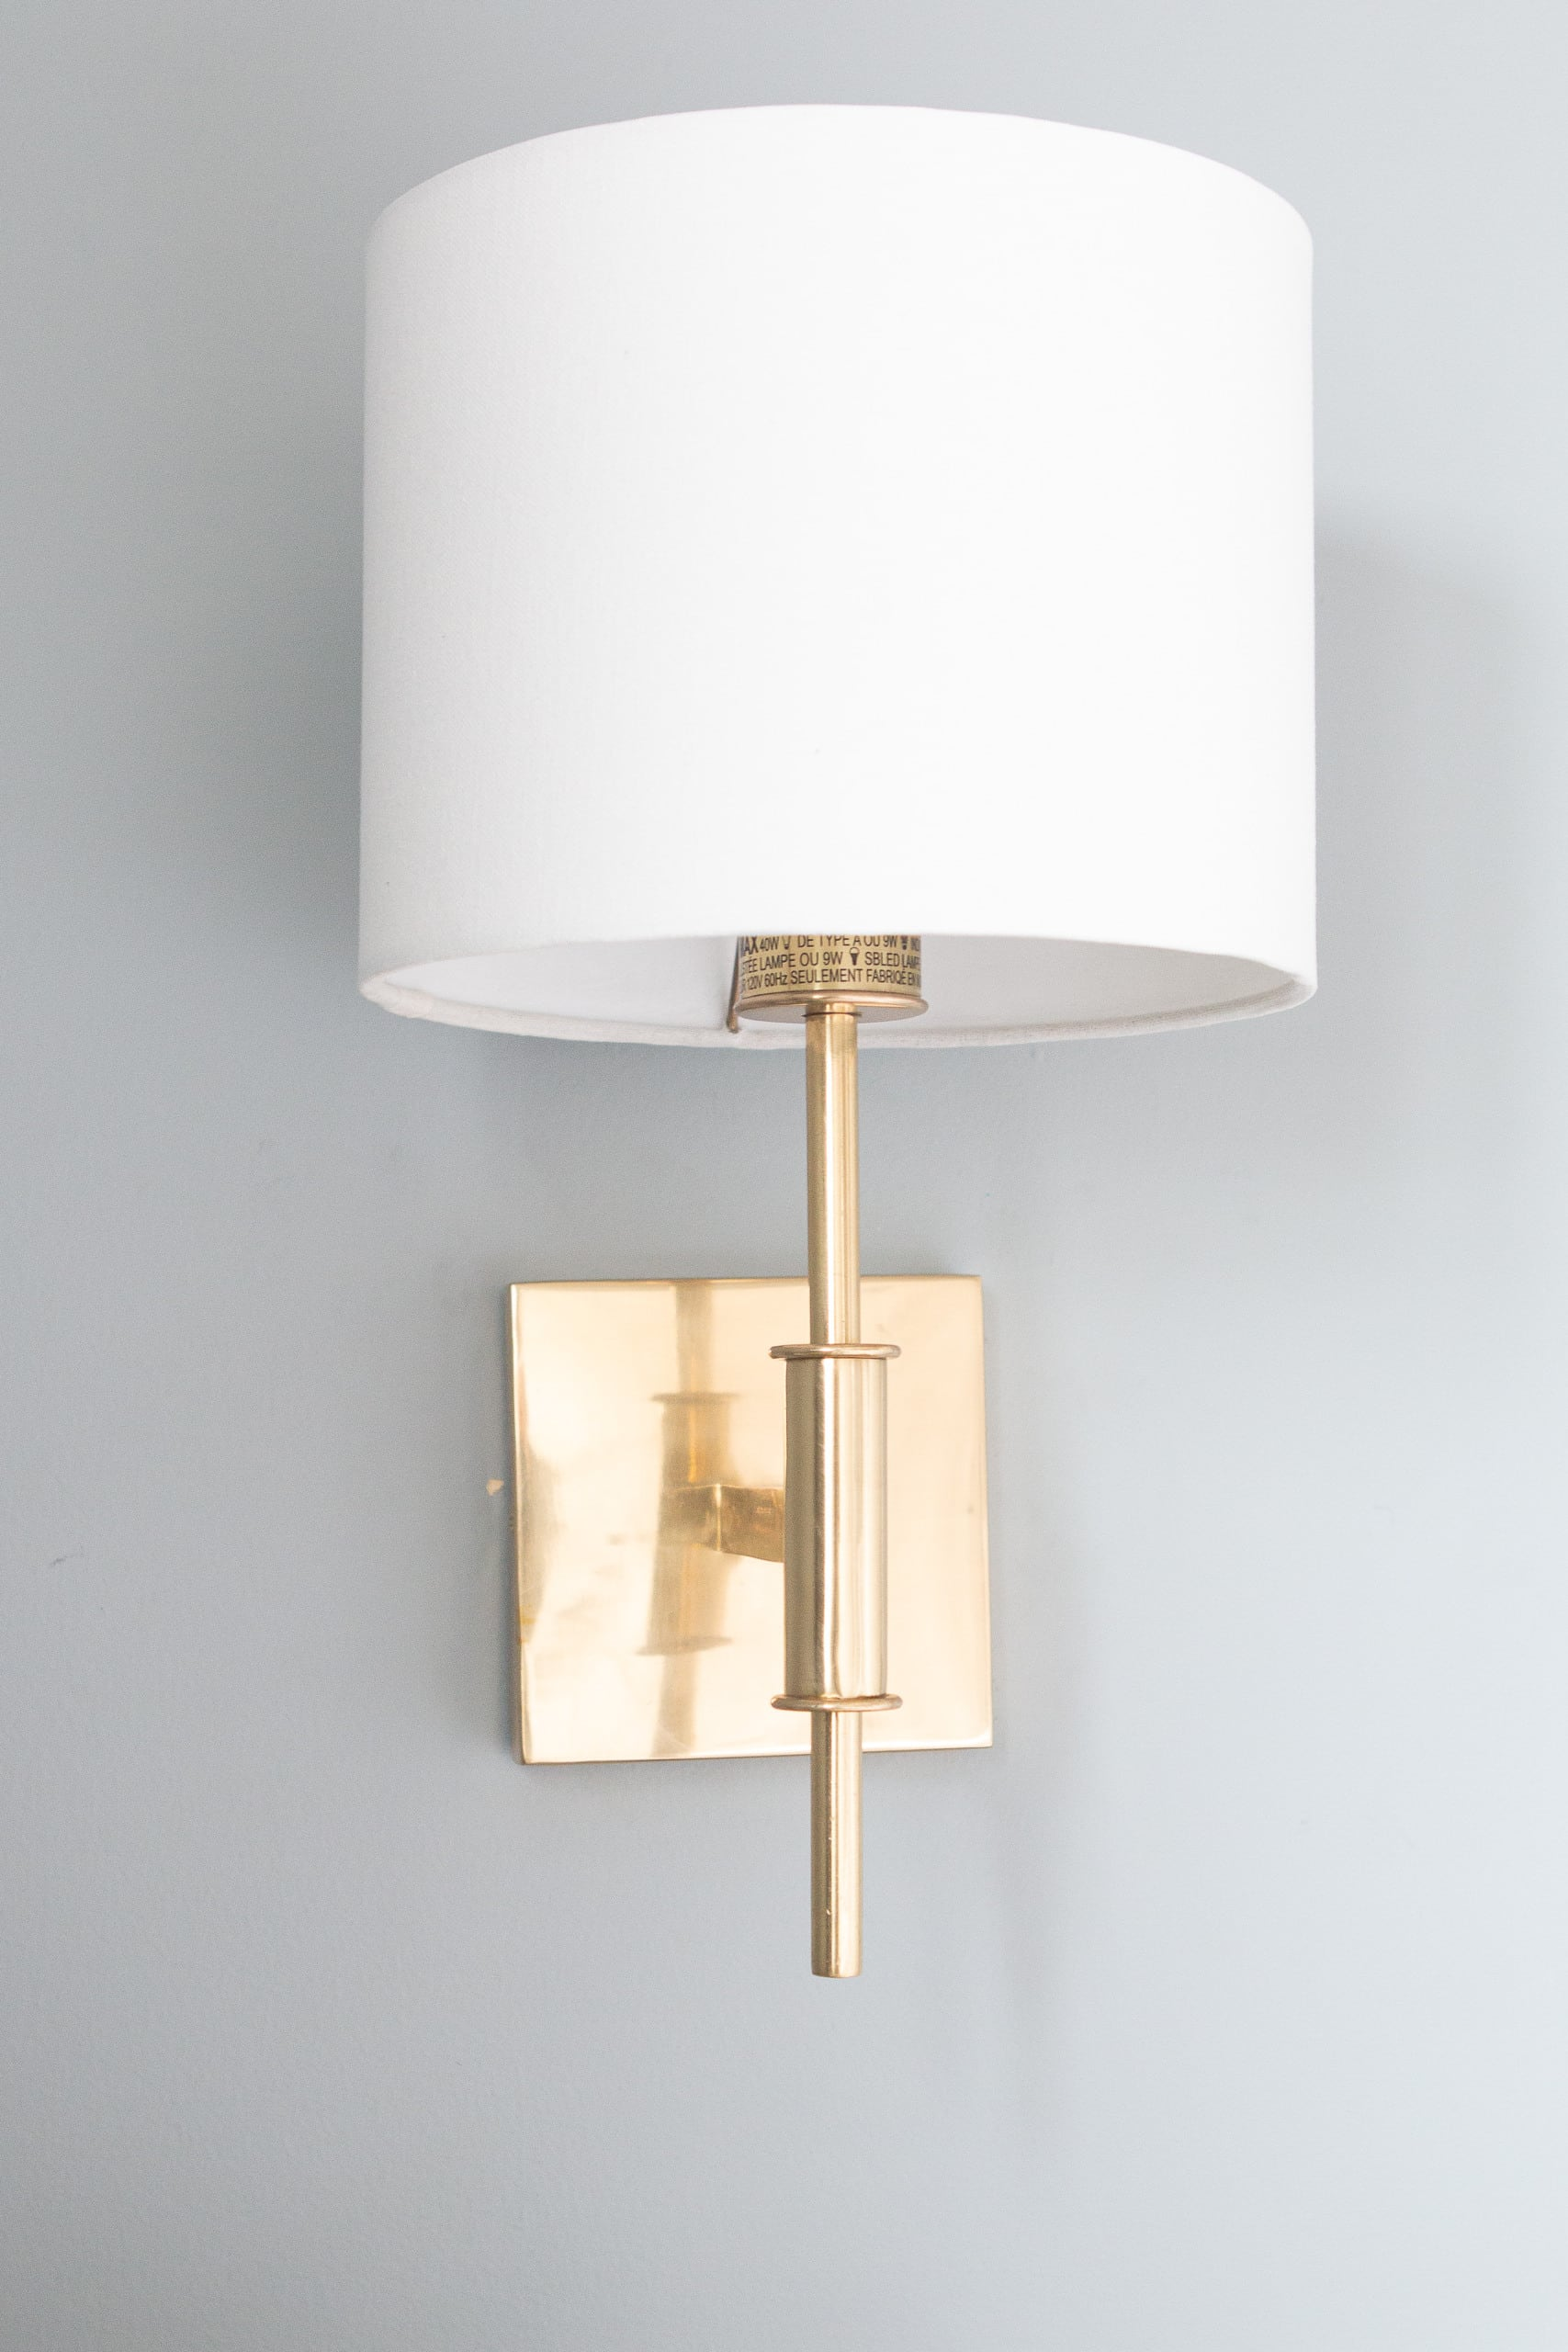 Brass sconces from Pottery Barn